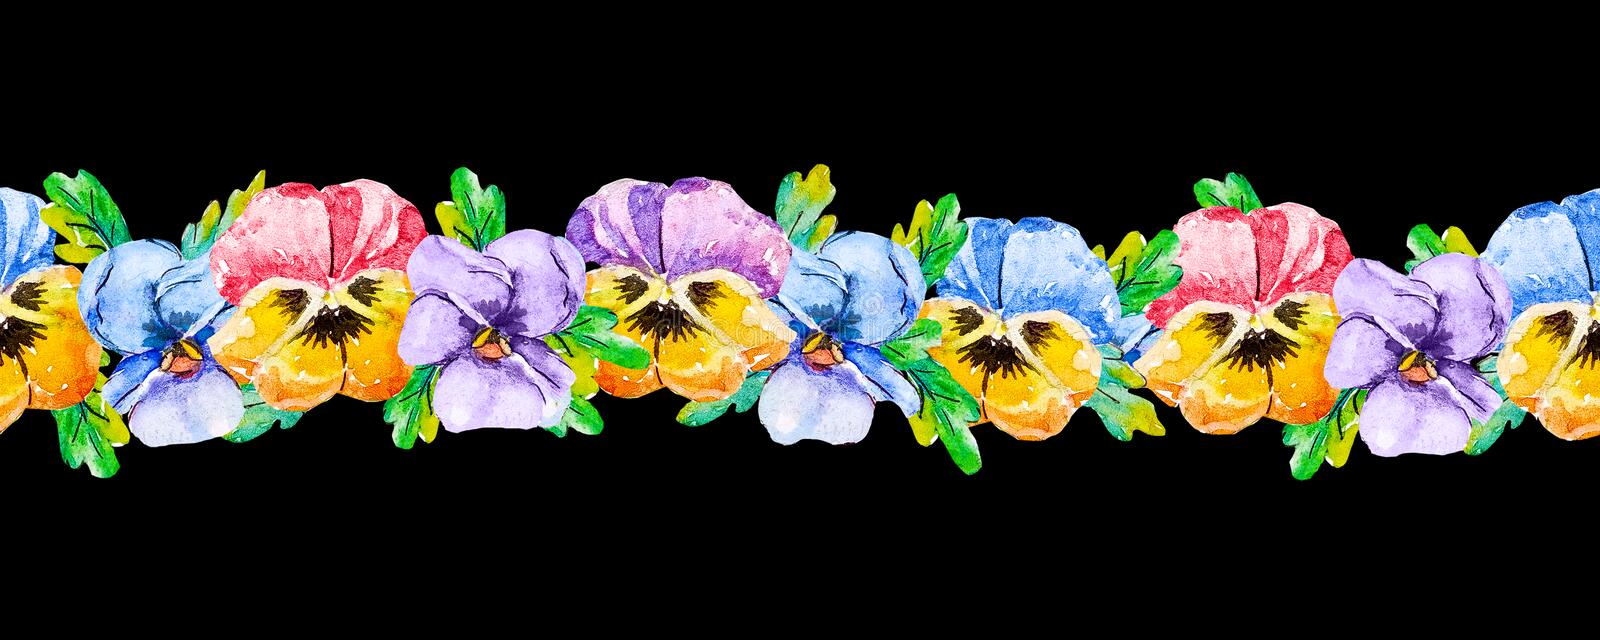 Seamless floral vertical stripe border band with yellow, pink, blue, purple pansies viola flowers in line or row on black vector illustration